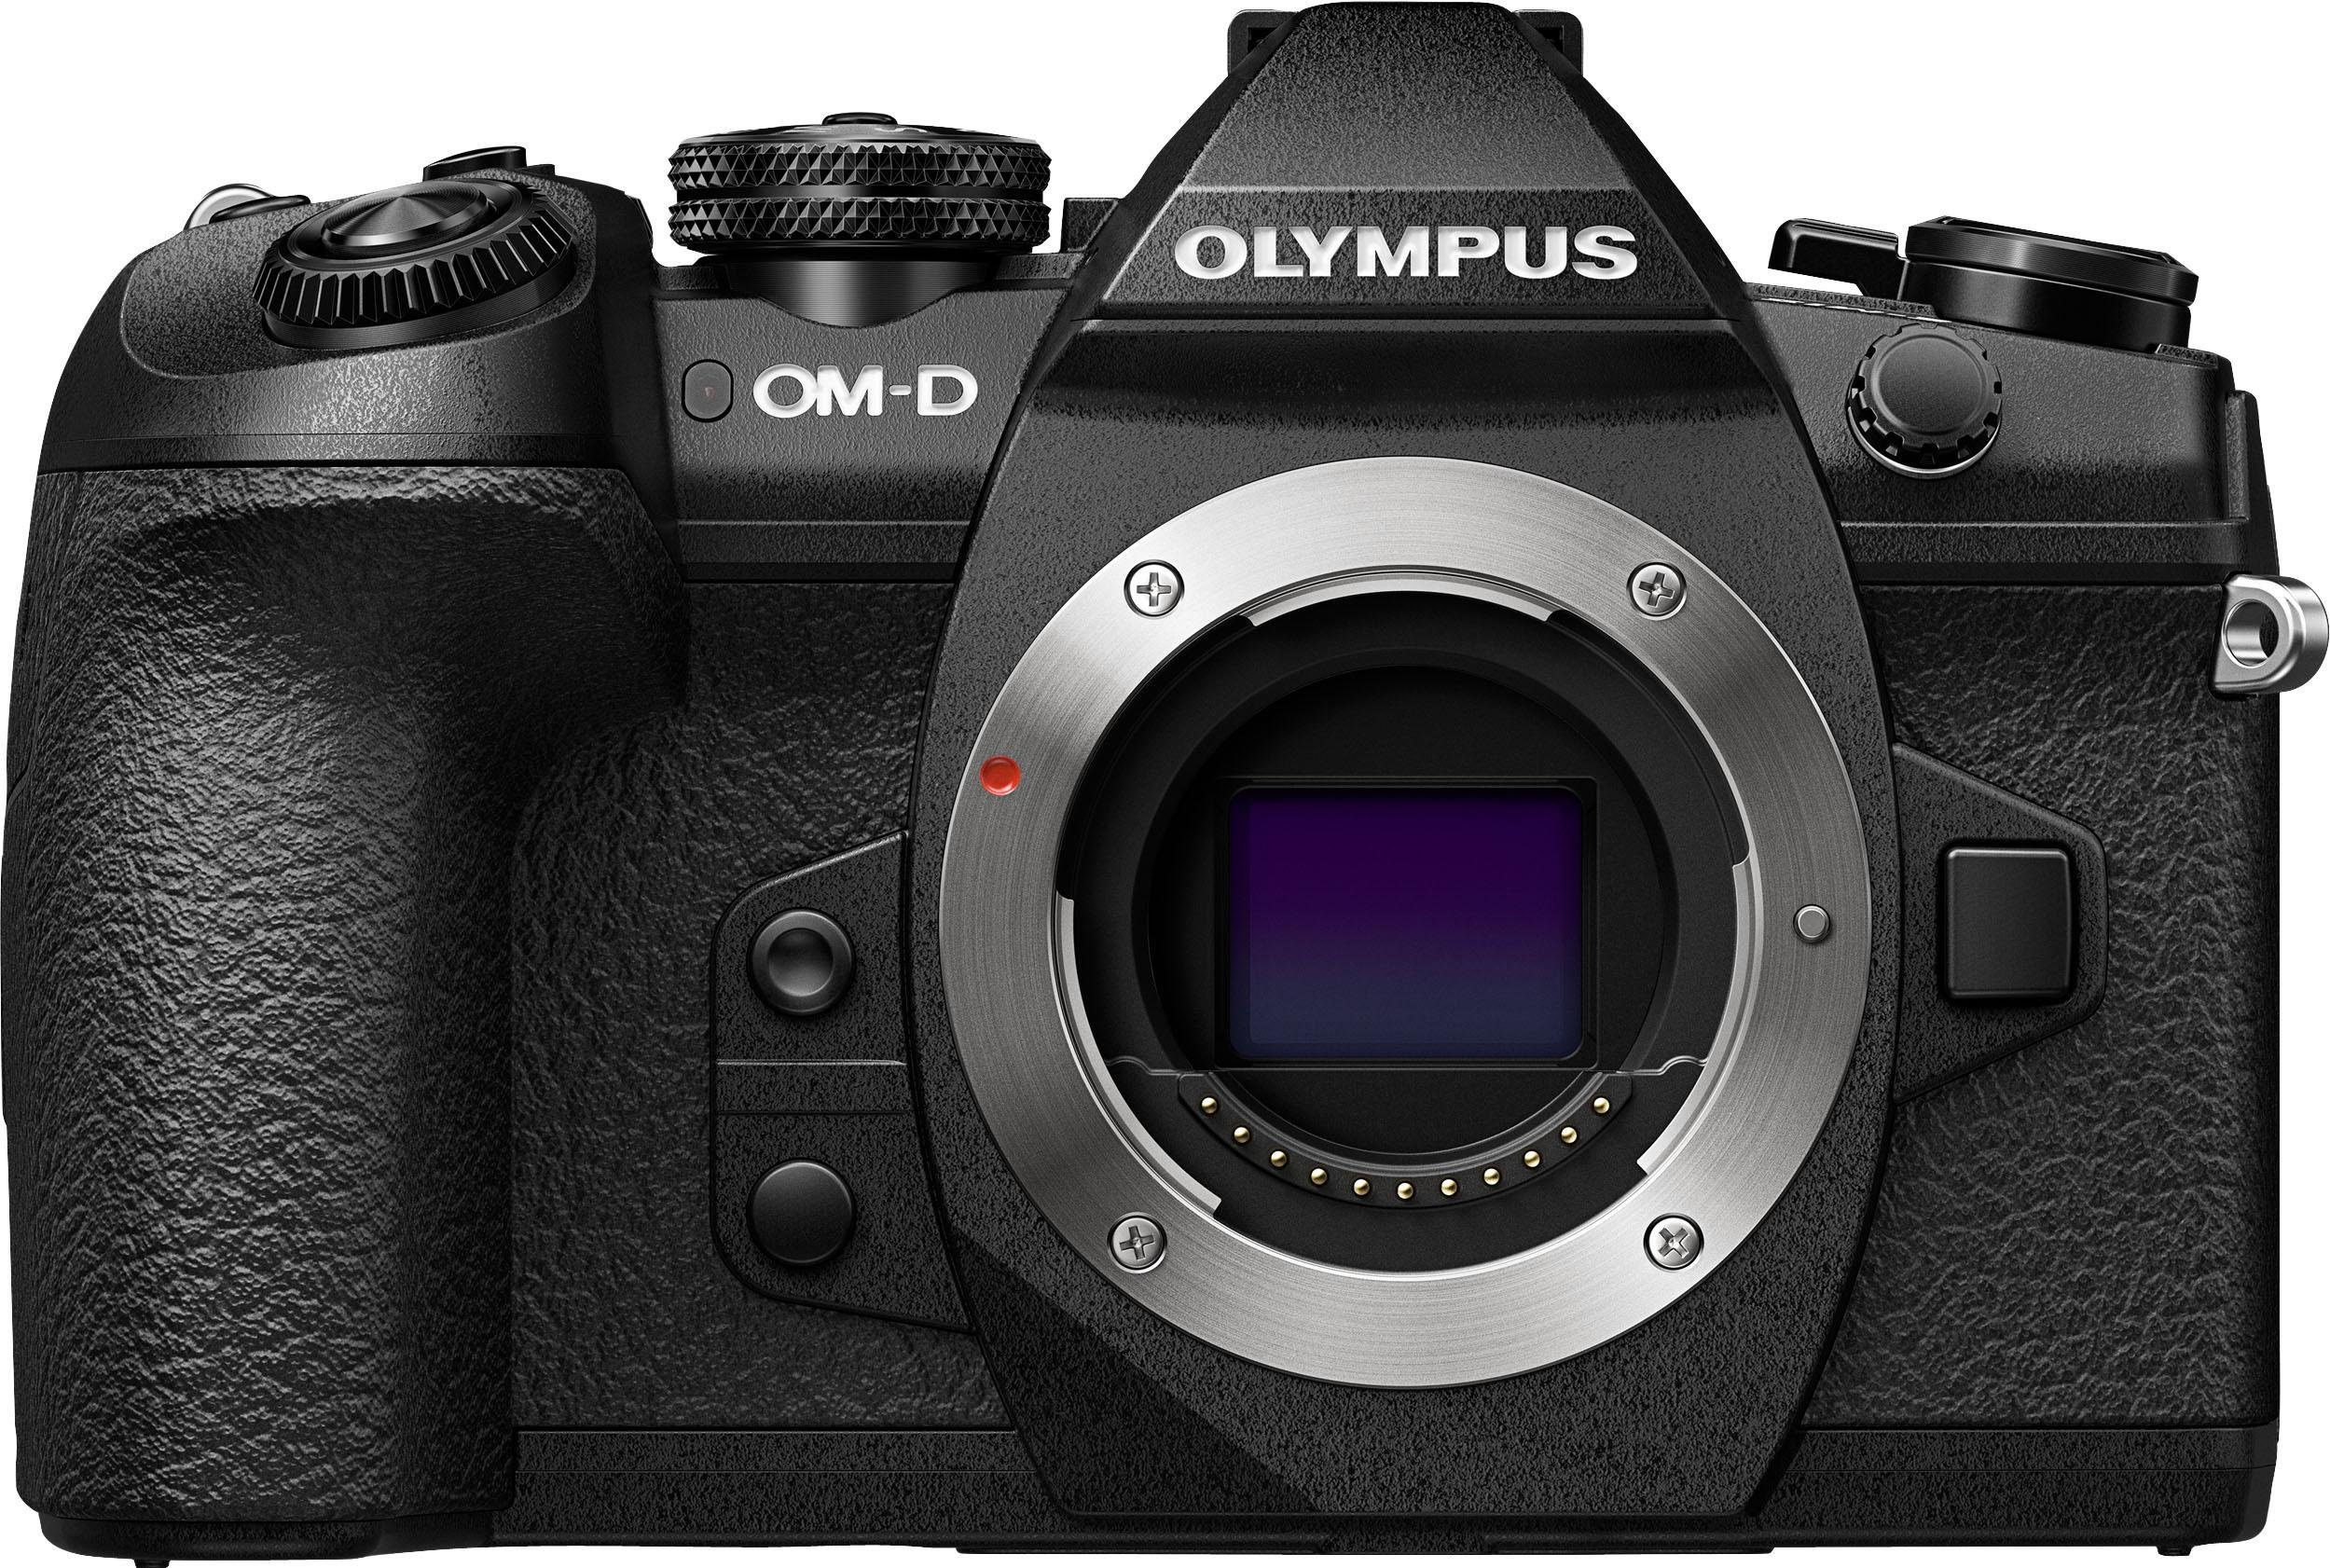 Olympus E-M1 Mark II Body schwarz System Kamera, 7,6 cm (3 Zoll) Display